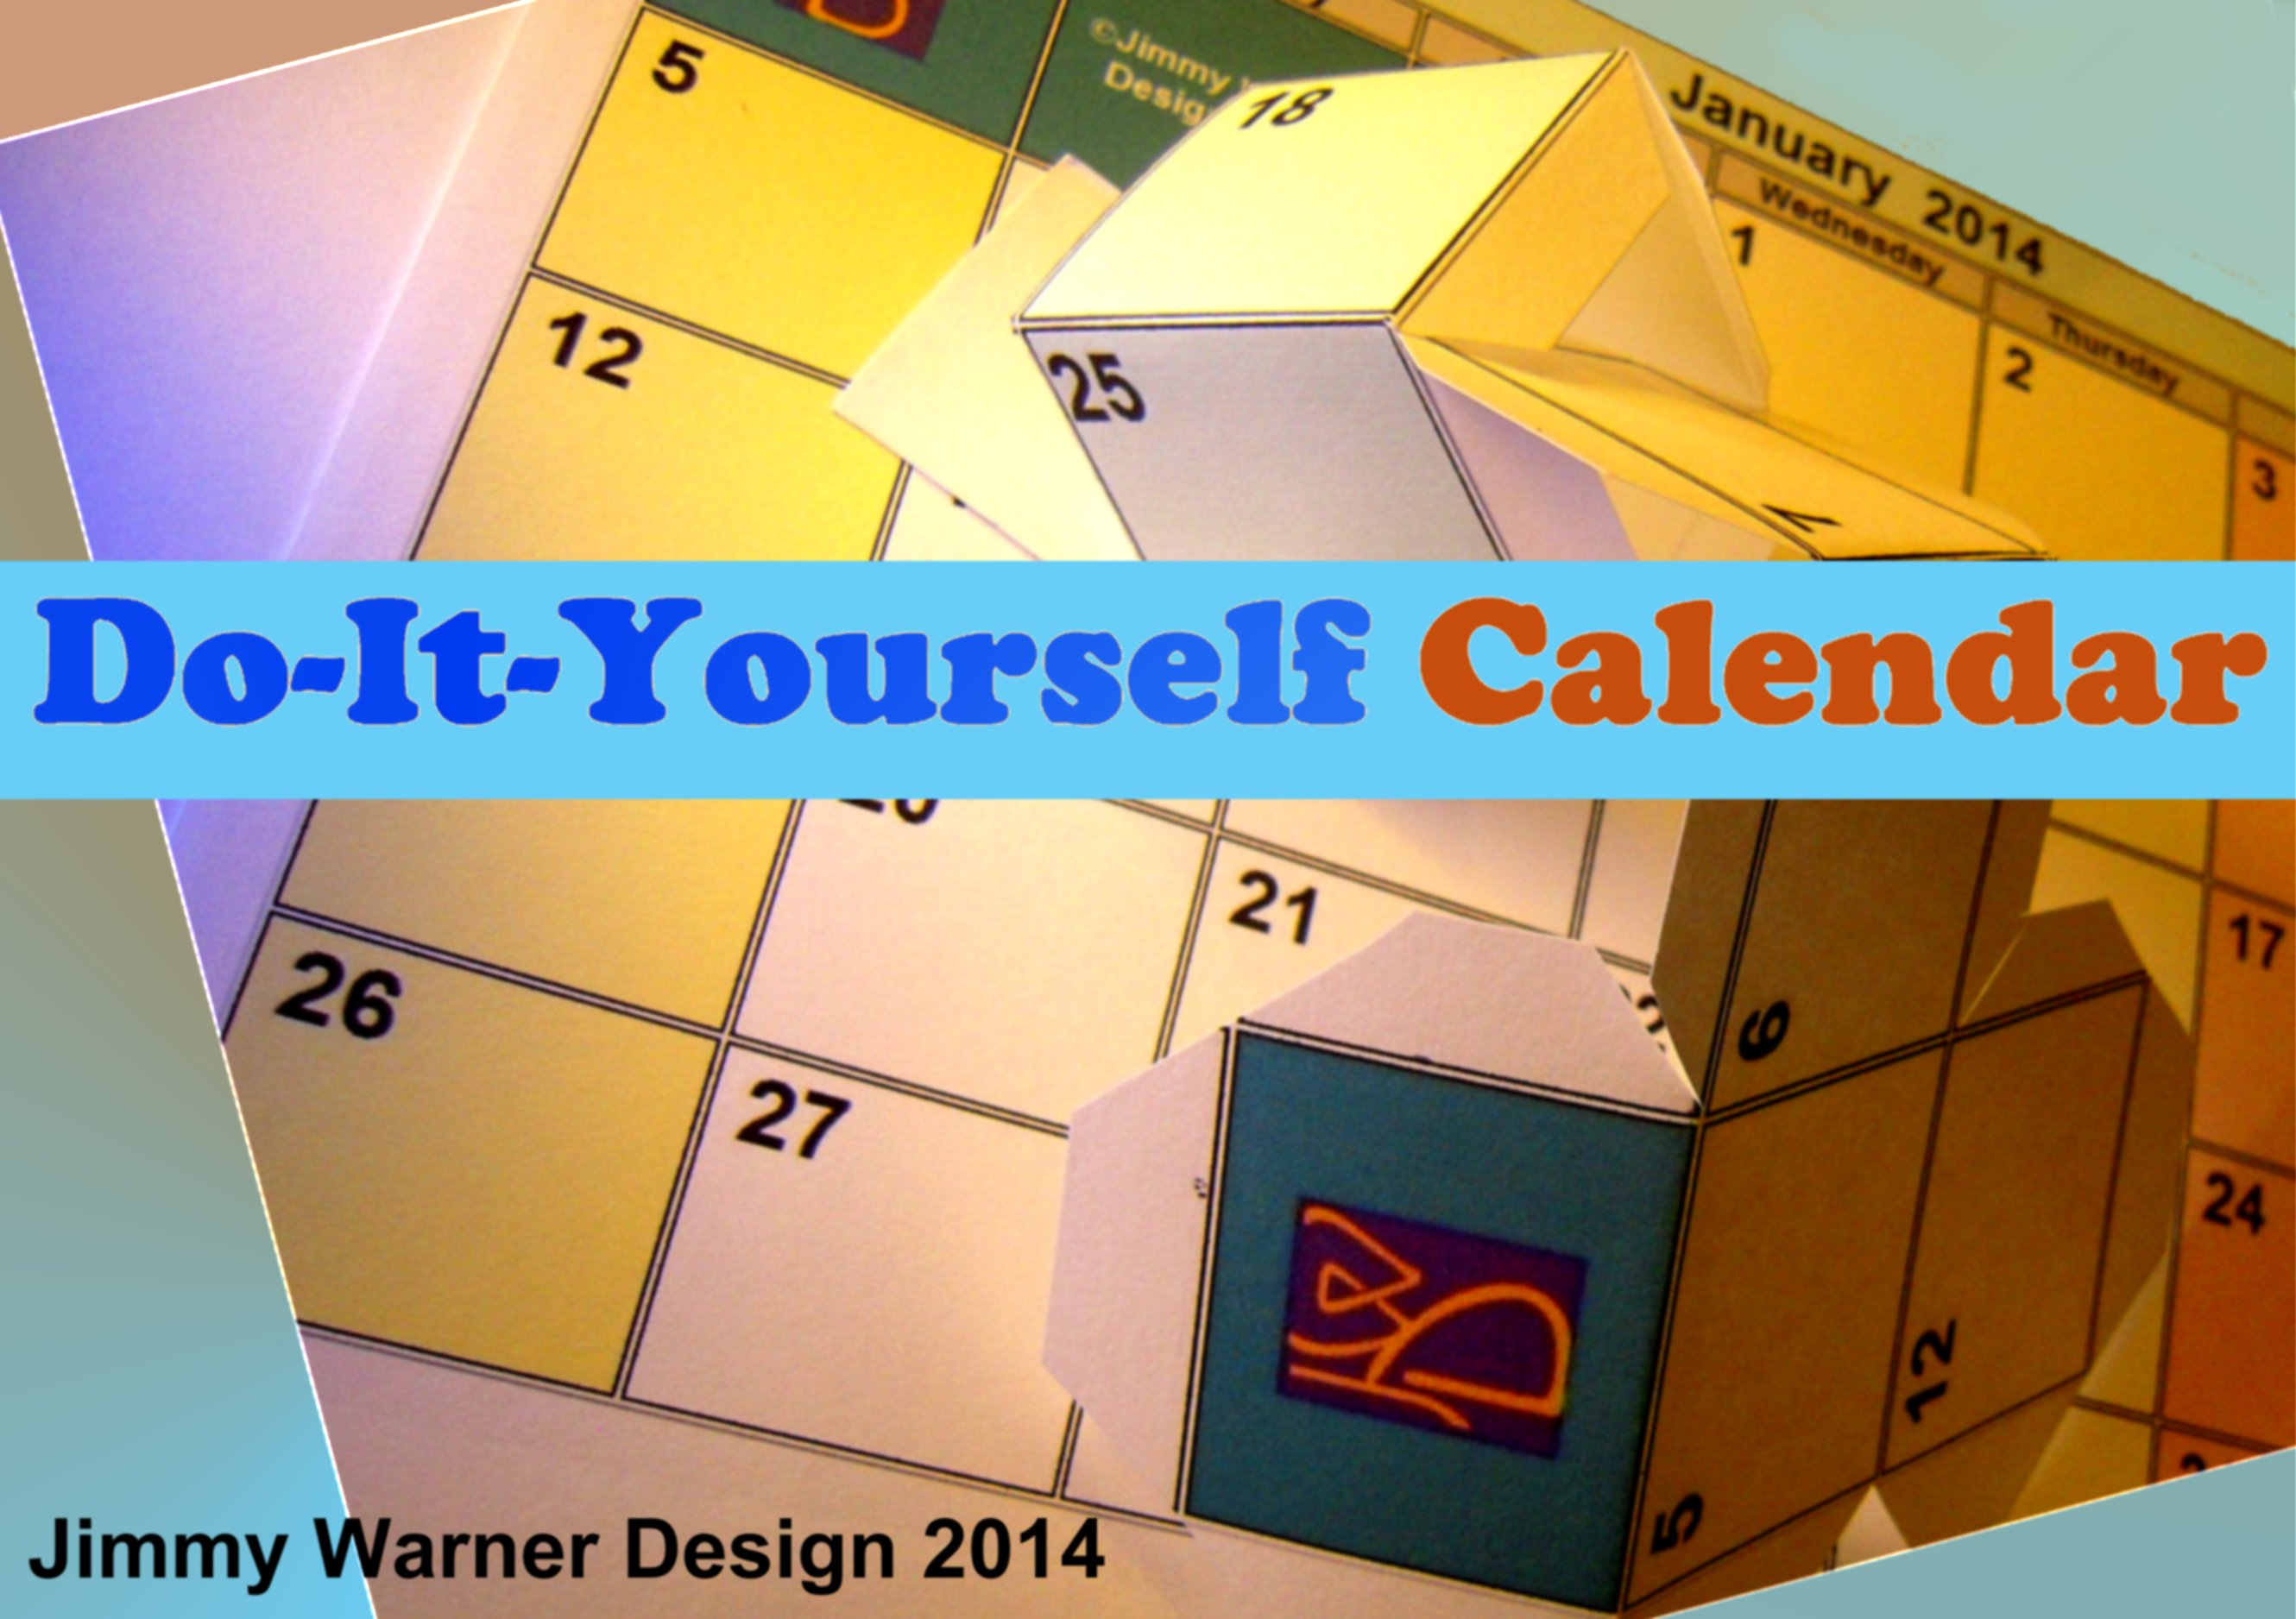 Calendar design any year by jimmmy warner design solutioingenieria Images